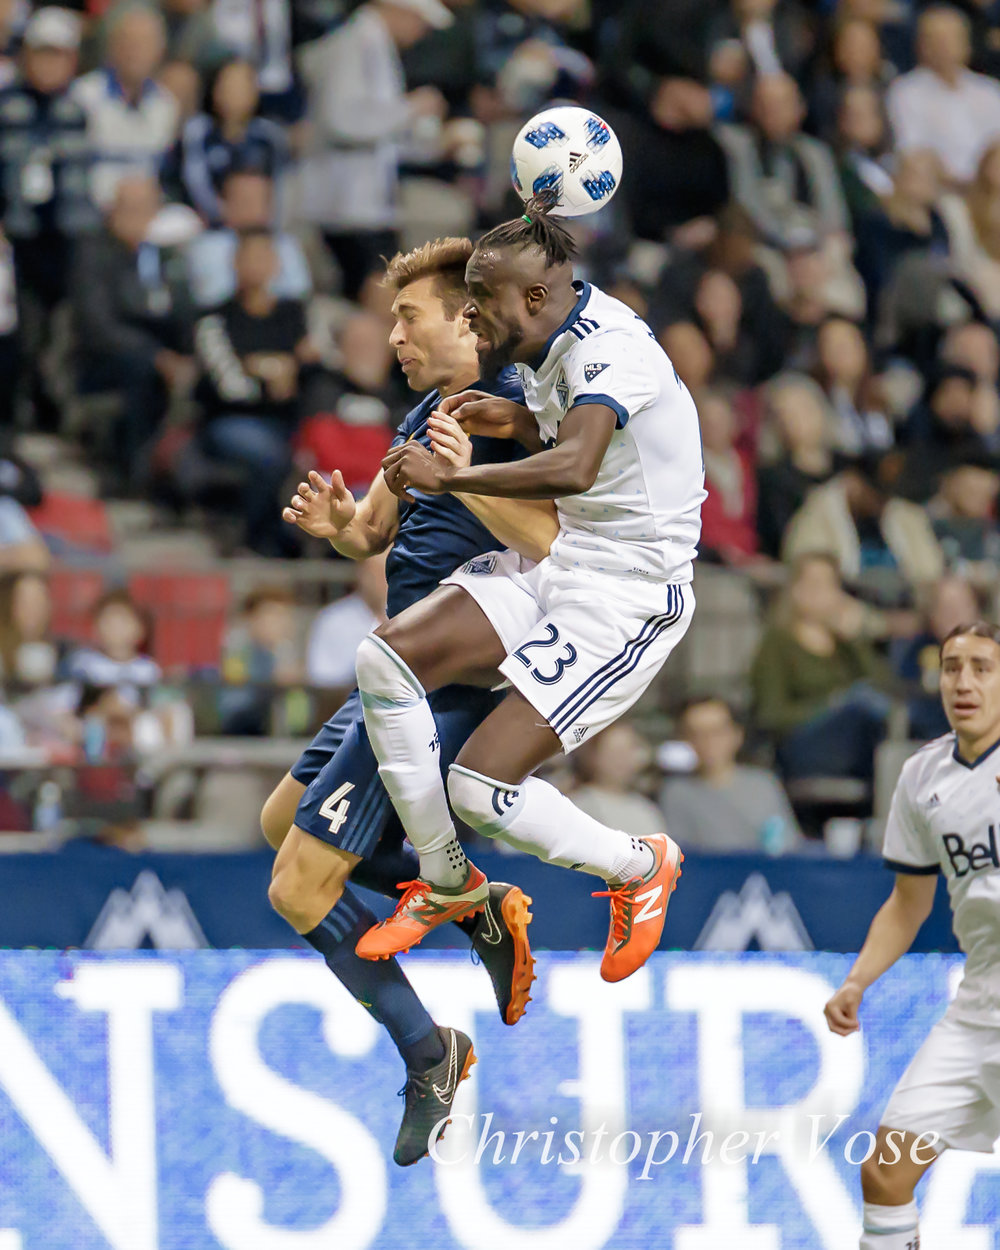 Kei Kamara contracts his body to give David Romney a sporting chance in their aerial duel at BC Place